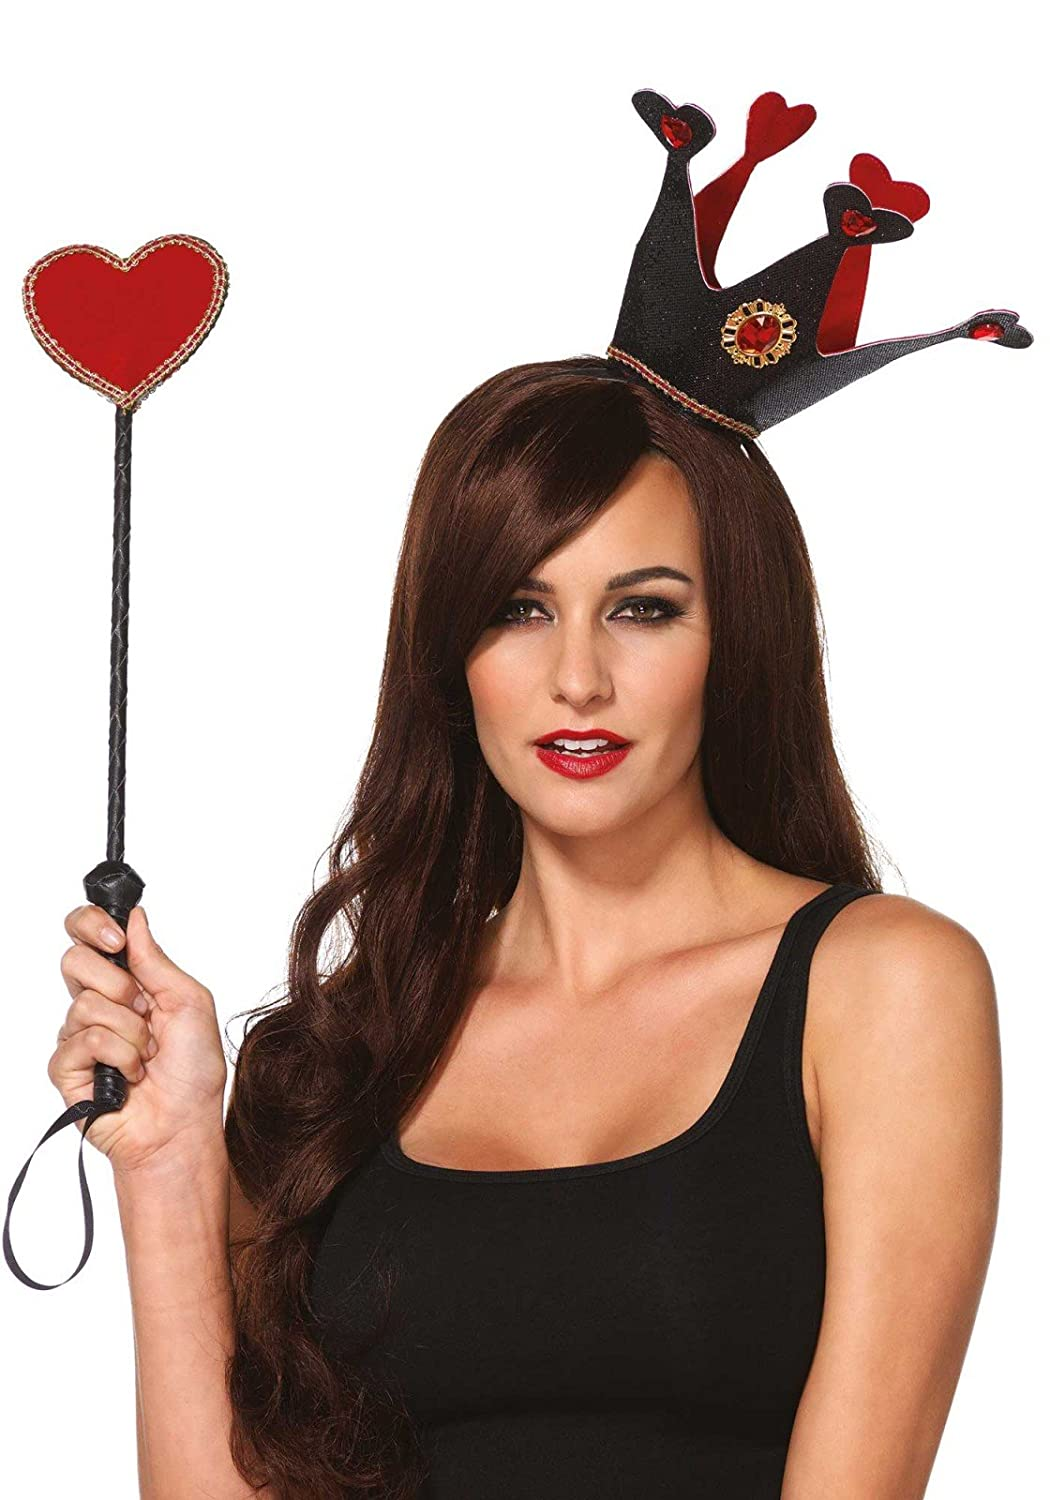 Women's Queen of Hearts Mini Fabric Crown and Scepter